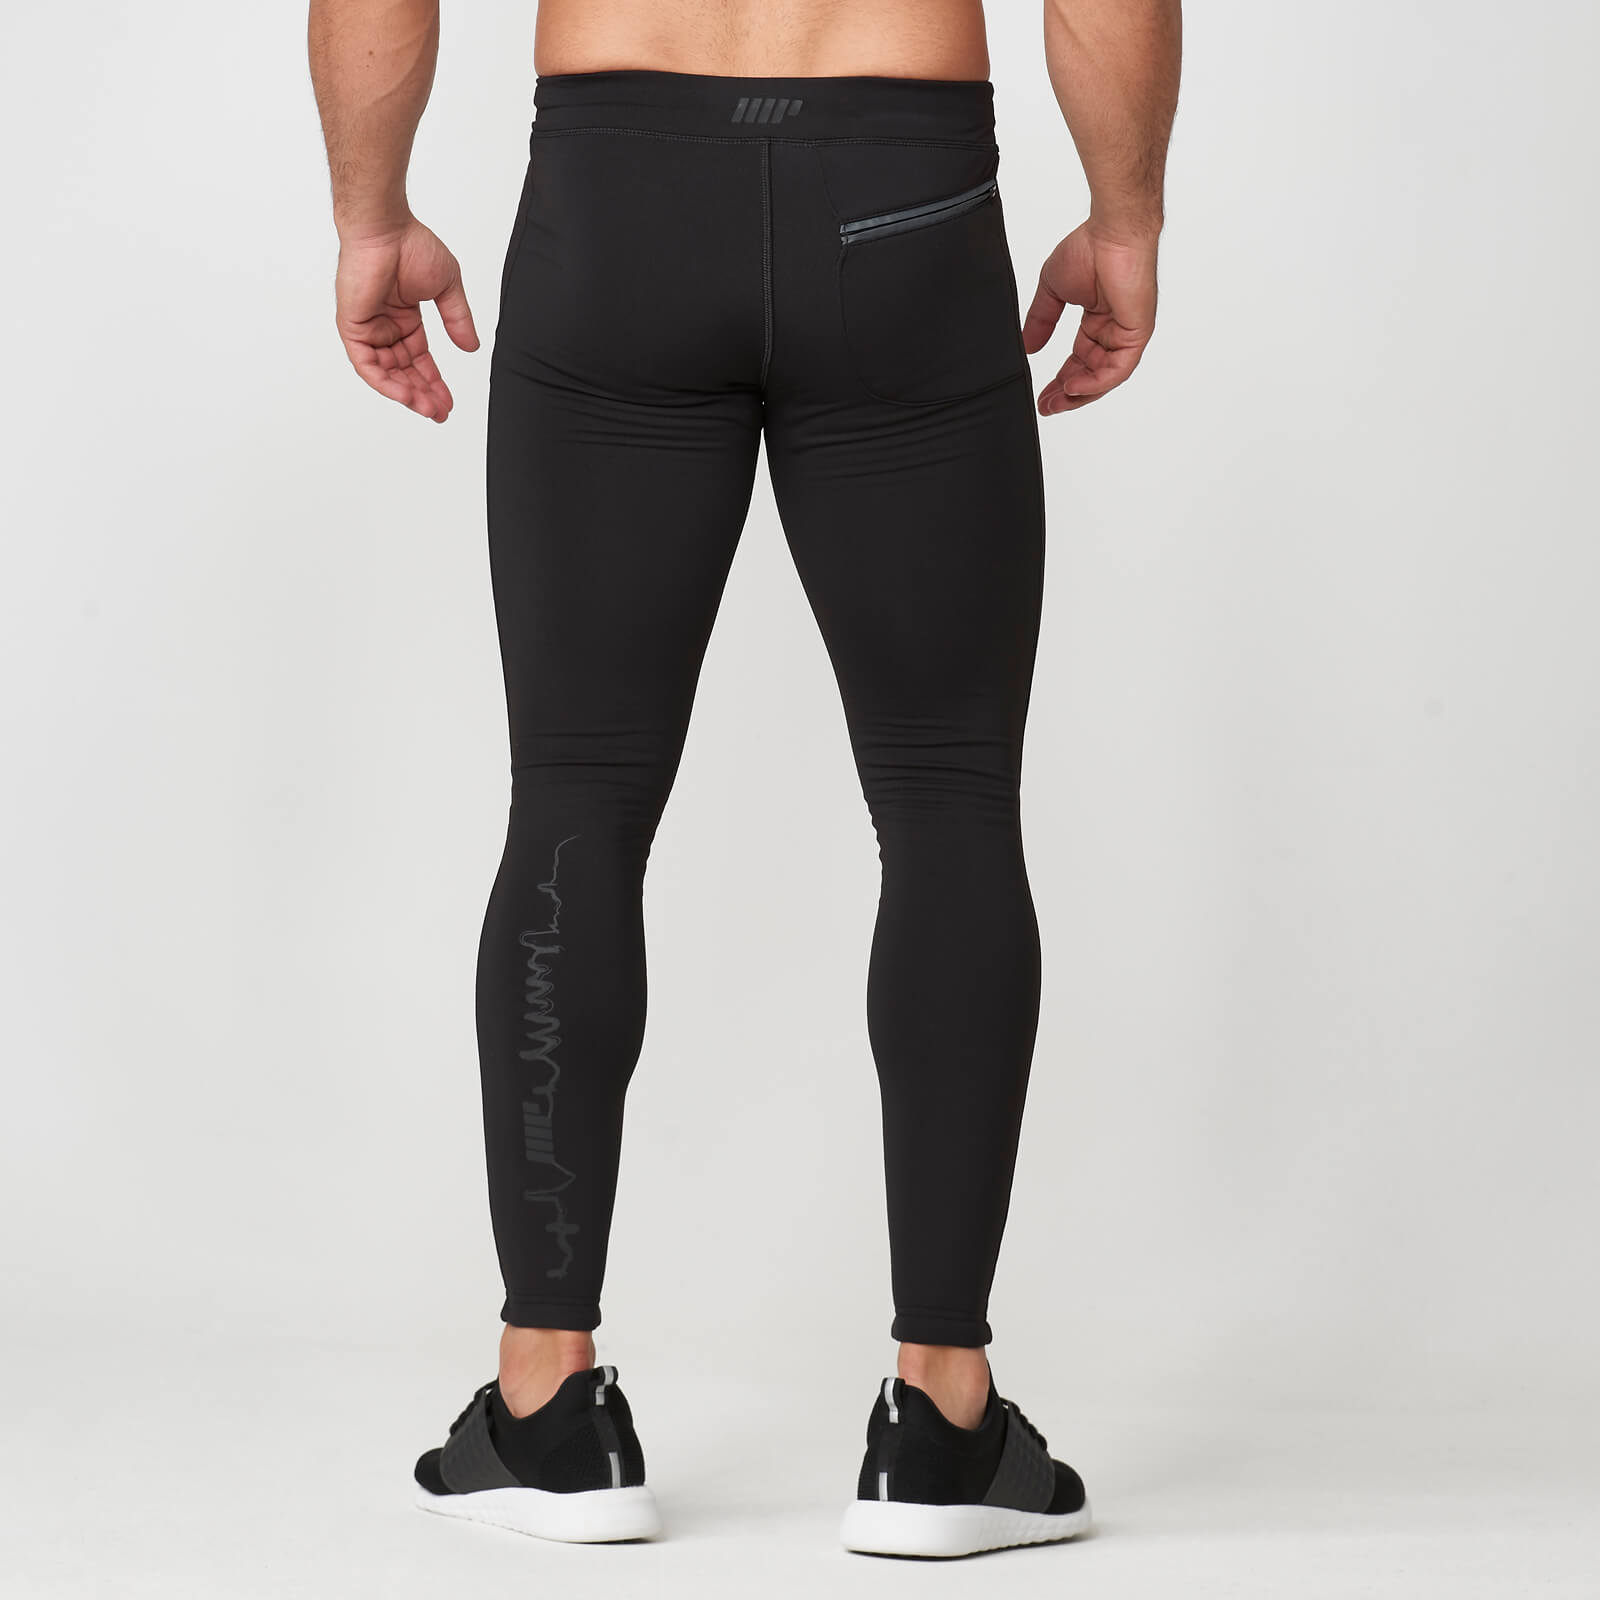 Myprotein Element Tights